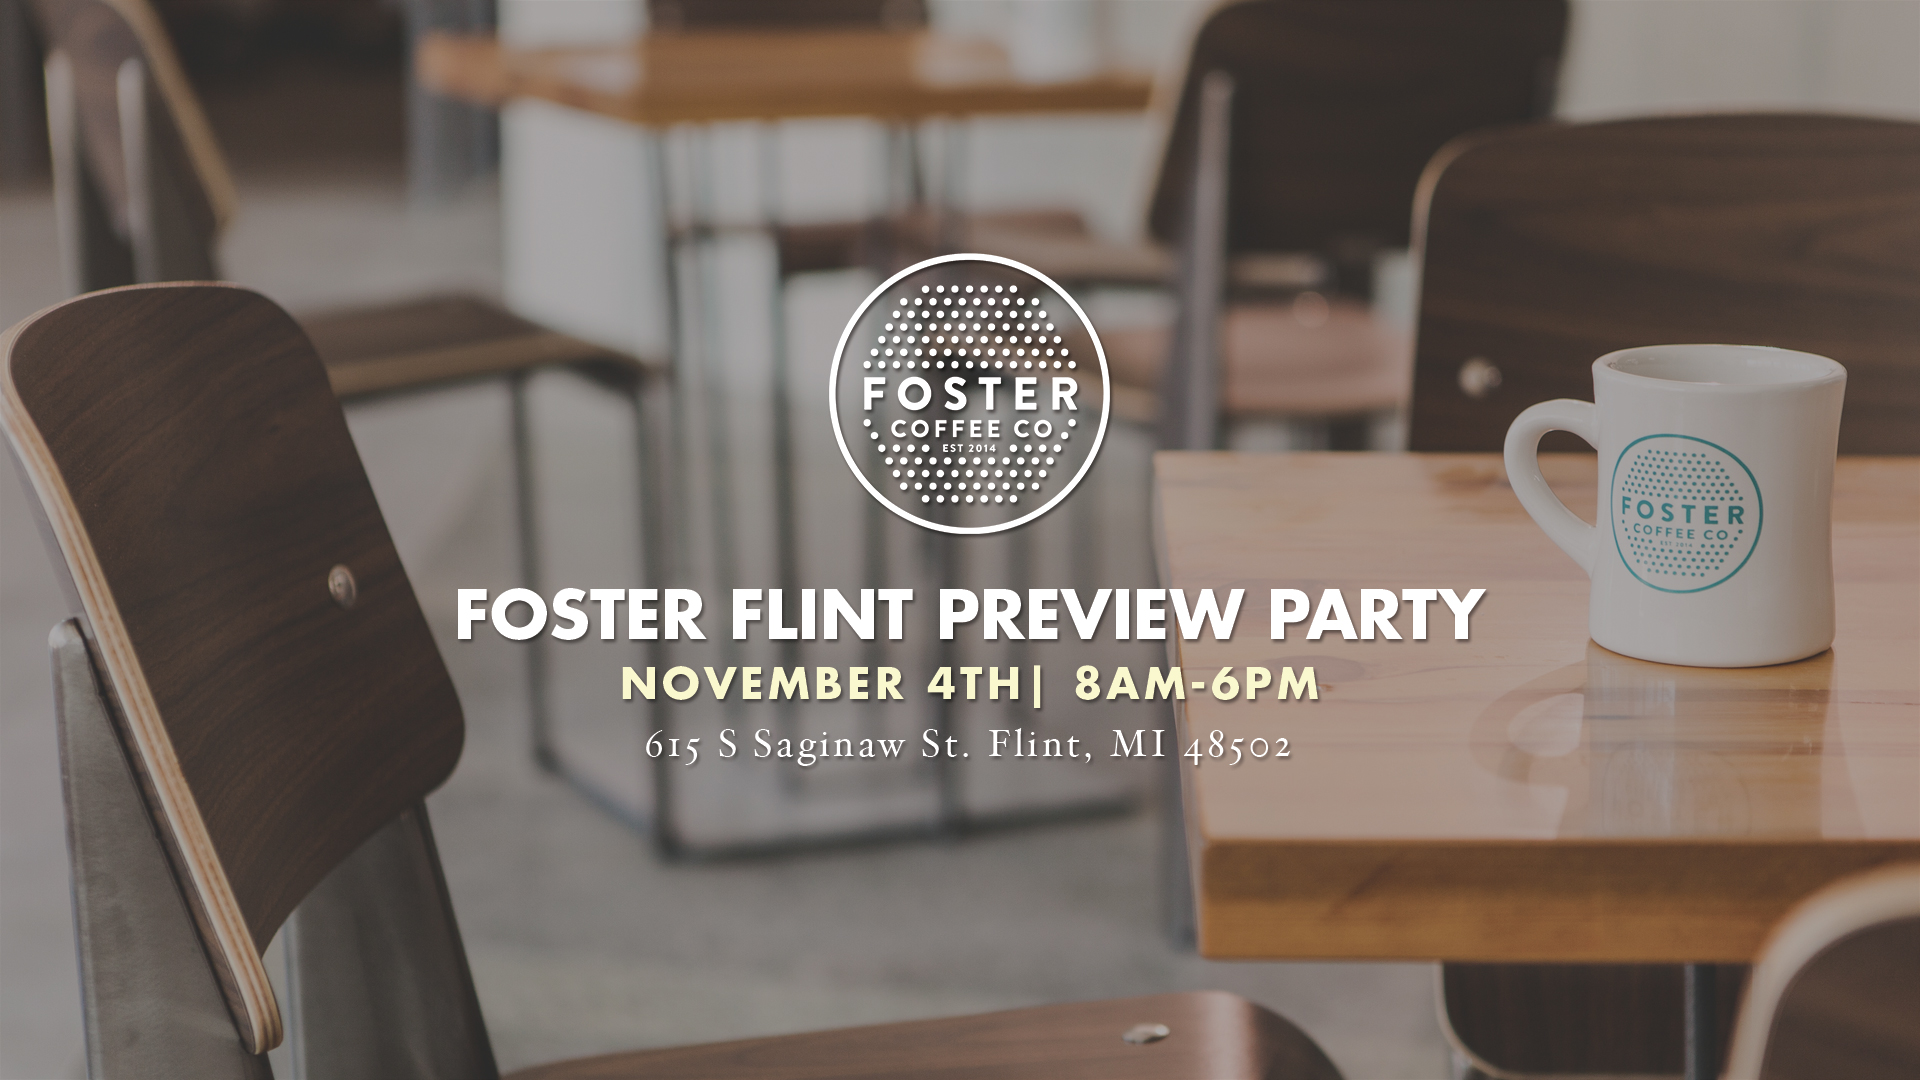 FosterFlint_Preview_Party_cover.jpg